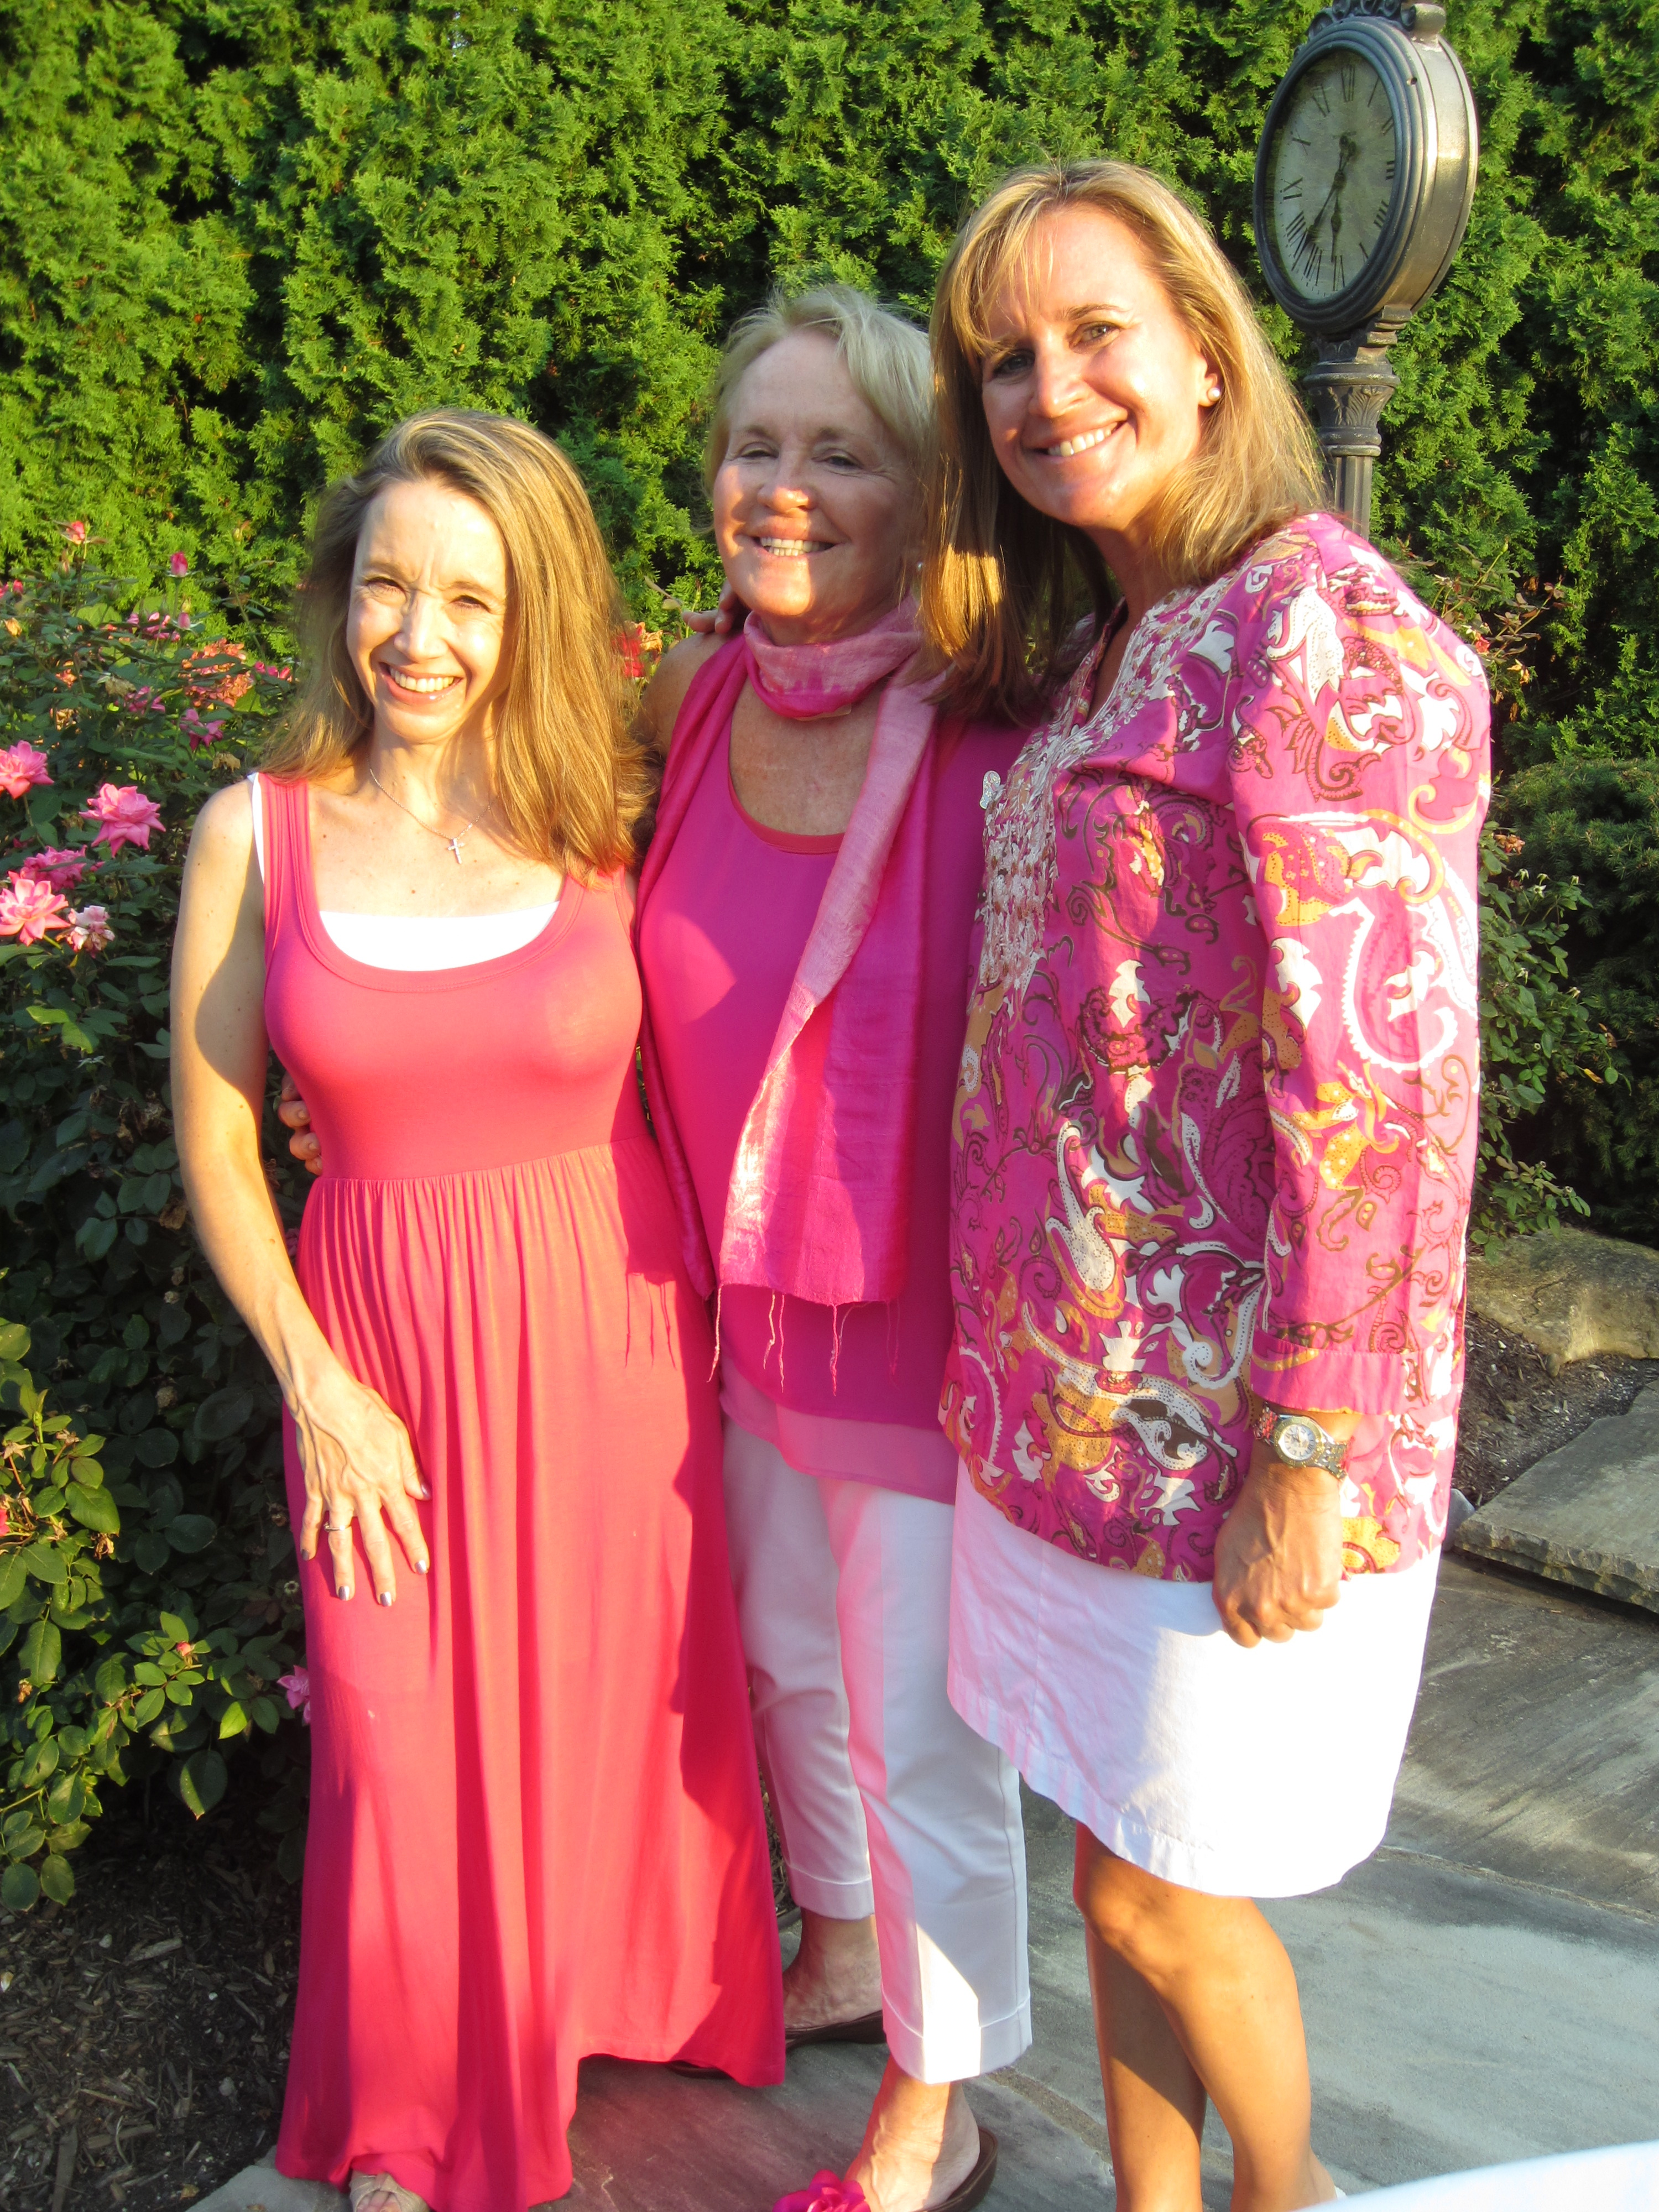 My sister Josie, my mother, and I at a party, Summer 2012